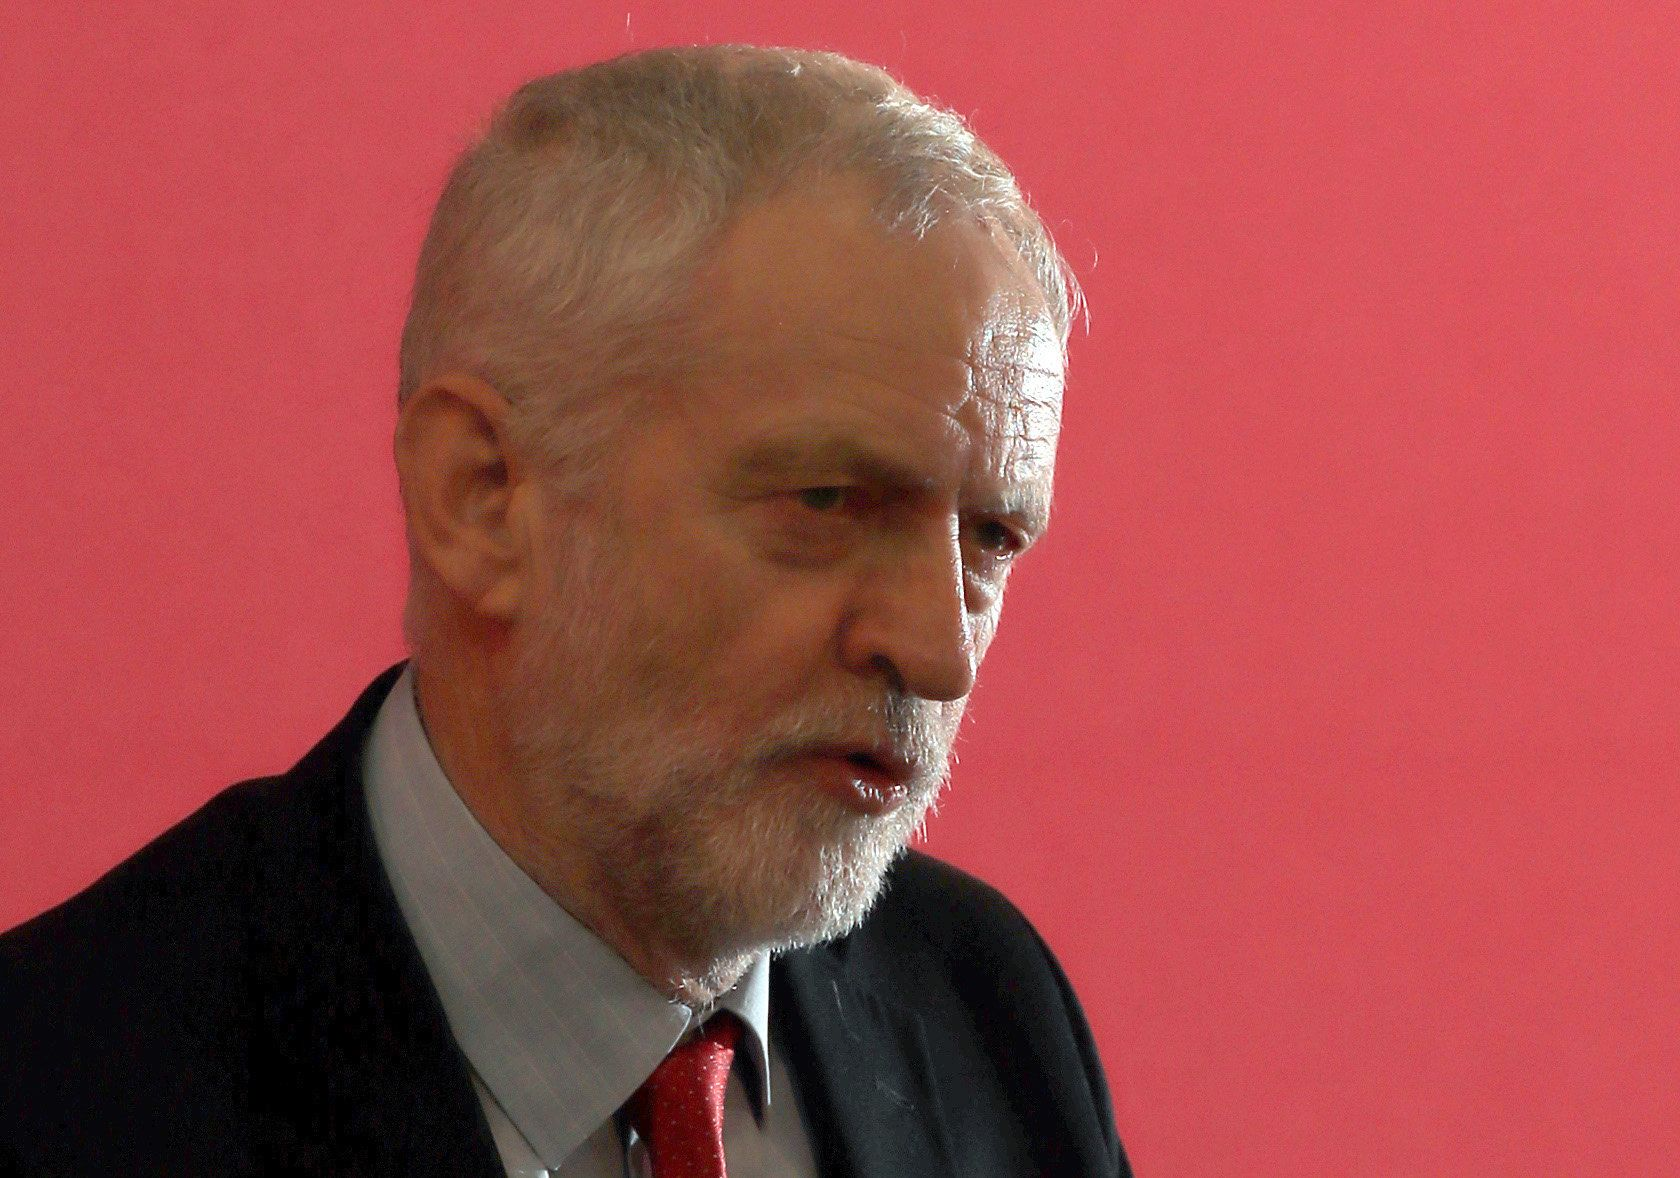 Jeremy Corbyn, Labour Leader, Defends Sharing Seder With Jewdas